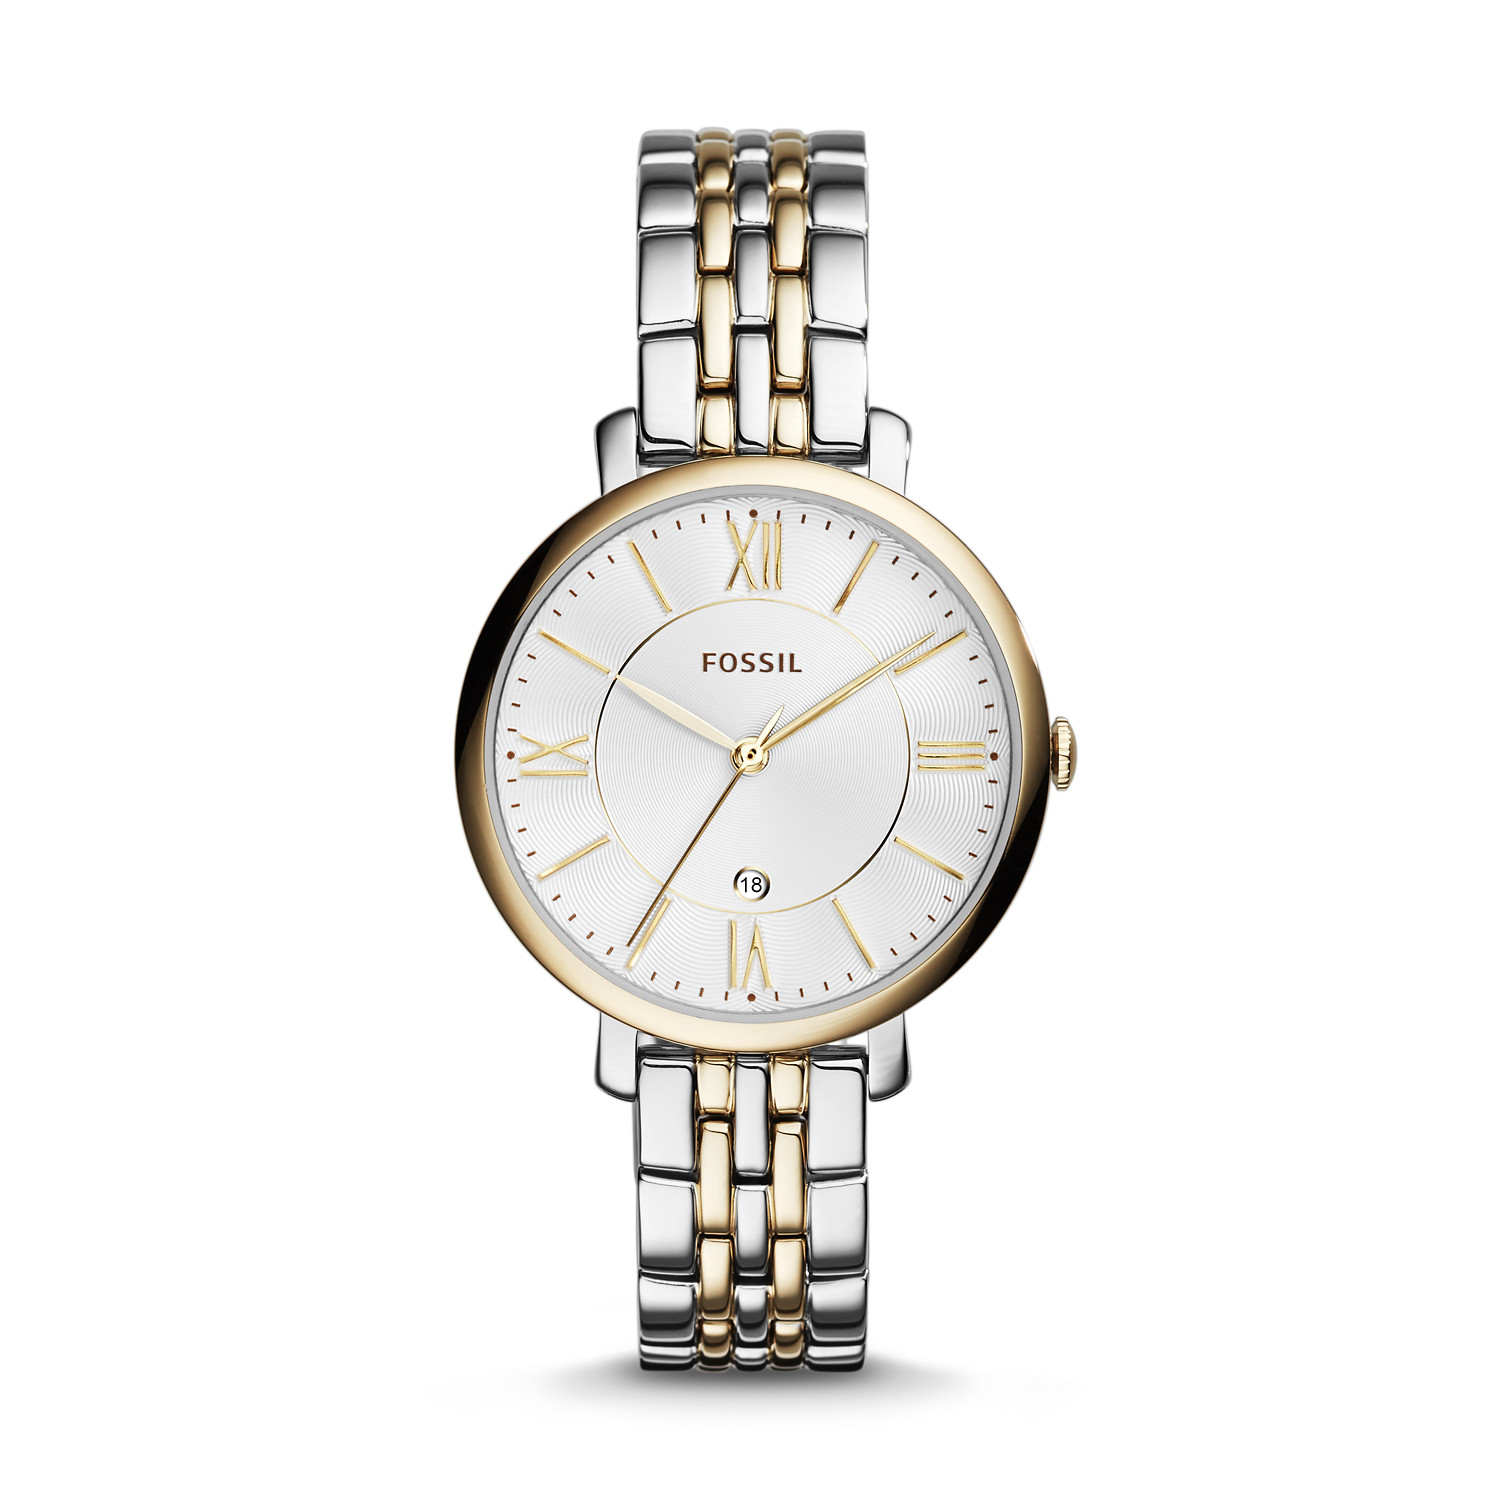 Fossil New July Edition Warung Jam Tangan Original Fs5170 Jacquelin Es3739